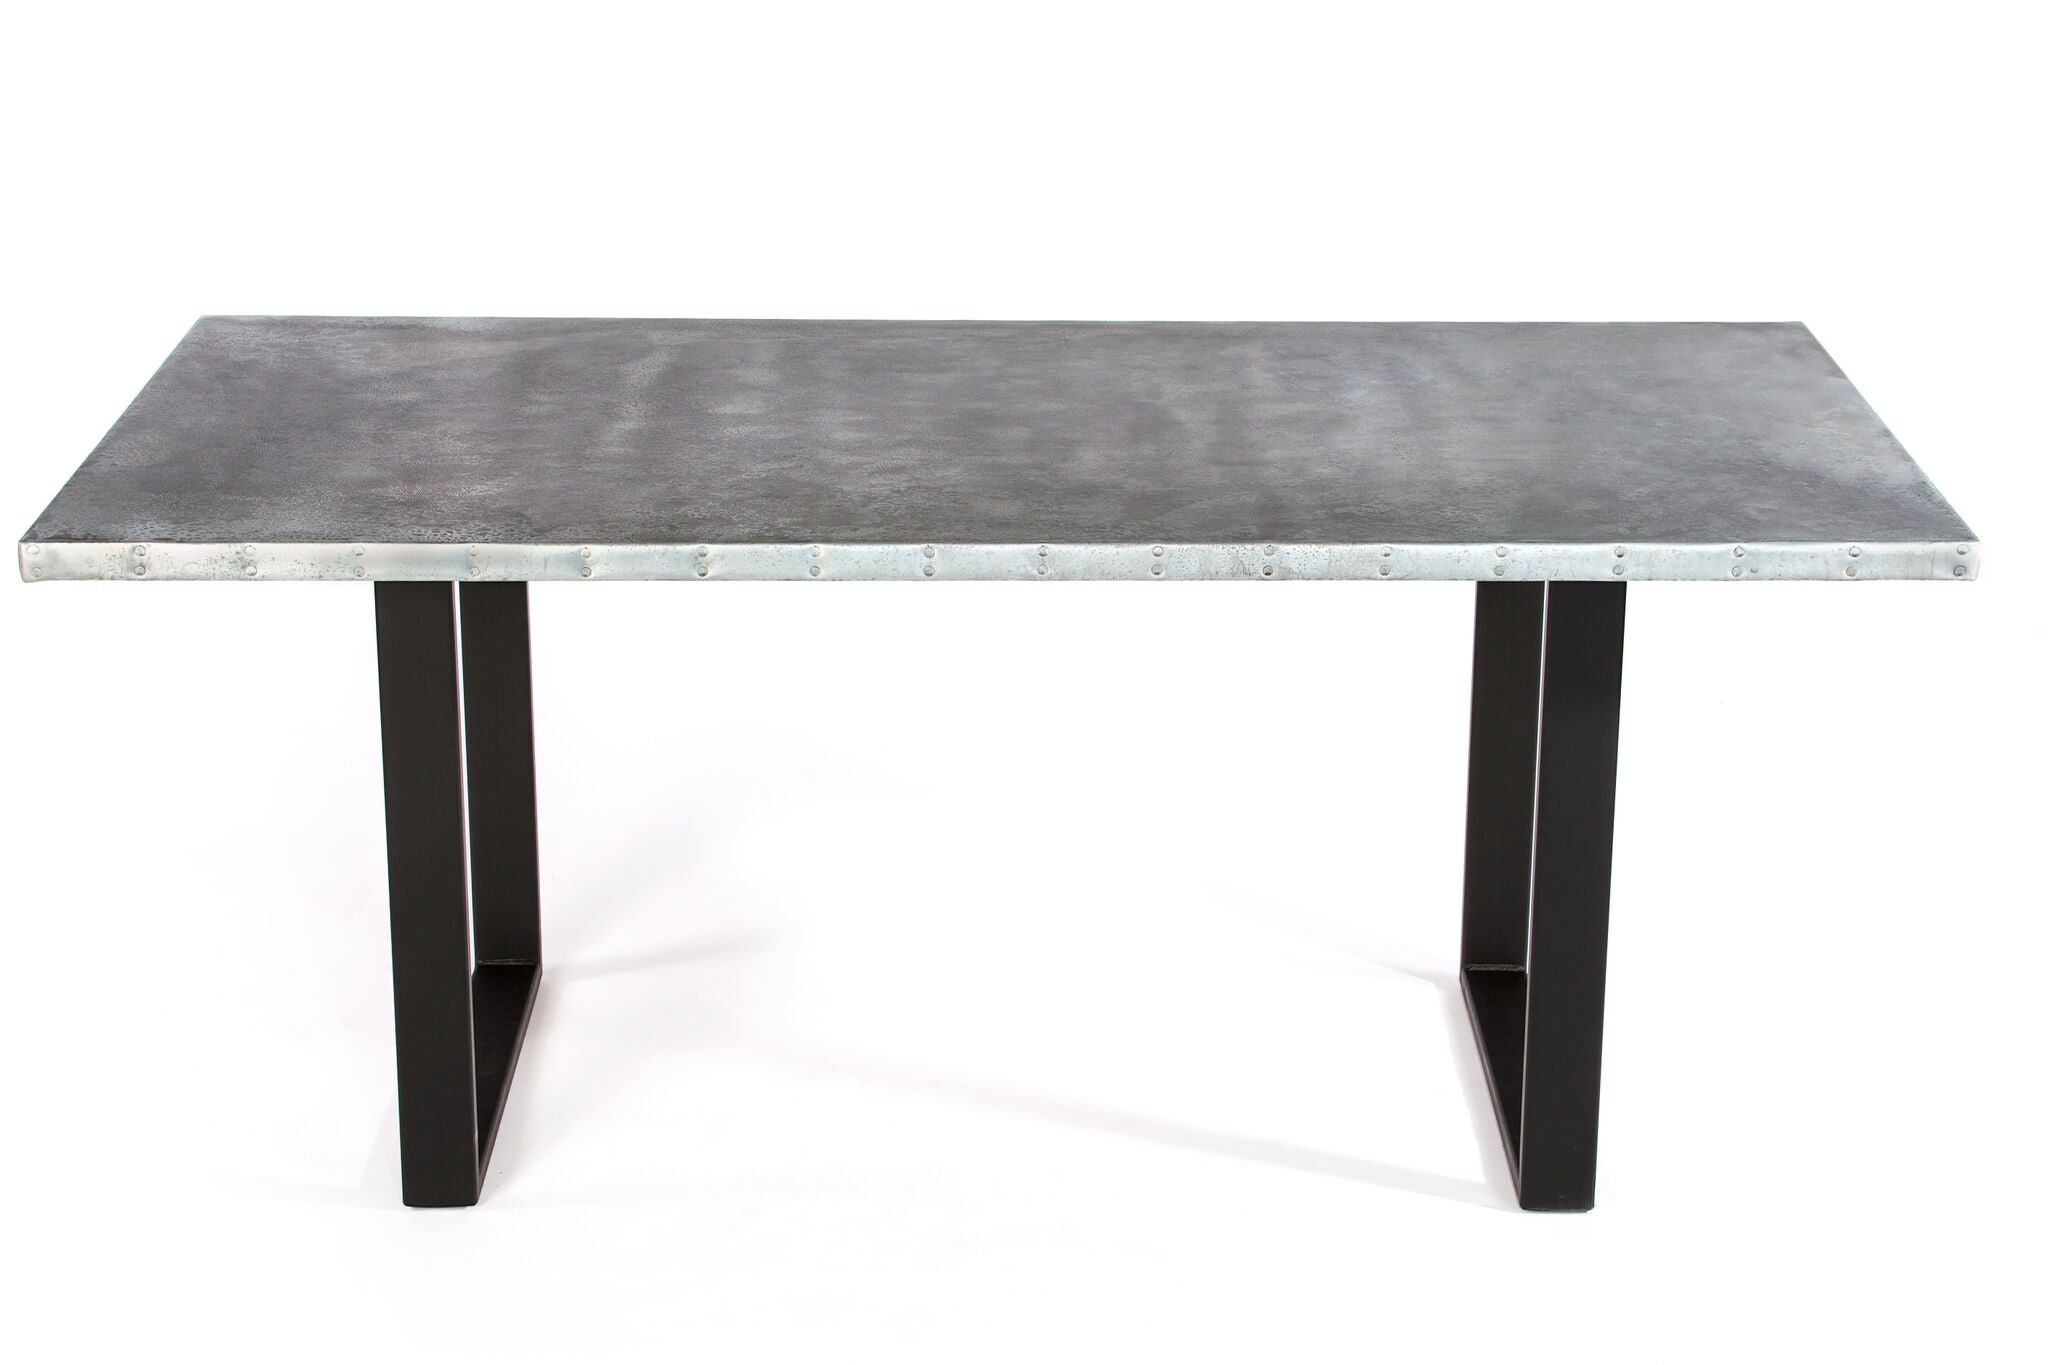 "Zinc Rectangular Table | Maddox Table | BLACKENED BRONZE | Black on Steel | CUSTOM SIZE L 72 W 37 H 30 | 1.5"" Standard 